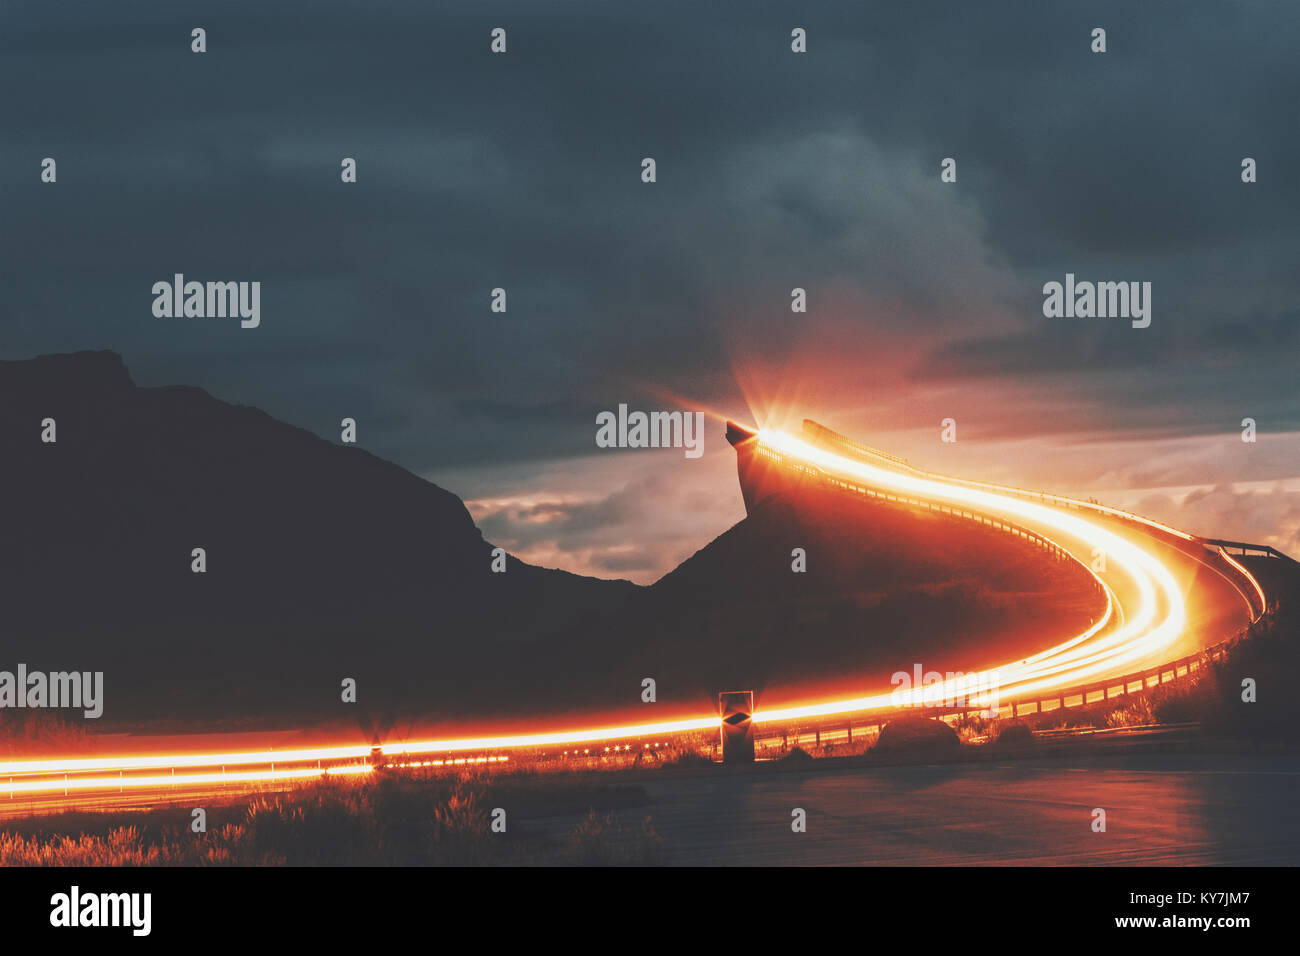 Atlantic road in Norway night Storseisundet bridge over ocean way to sky scandinavian travel landmarks Stock Photo